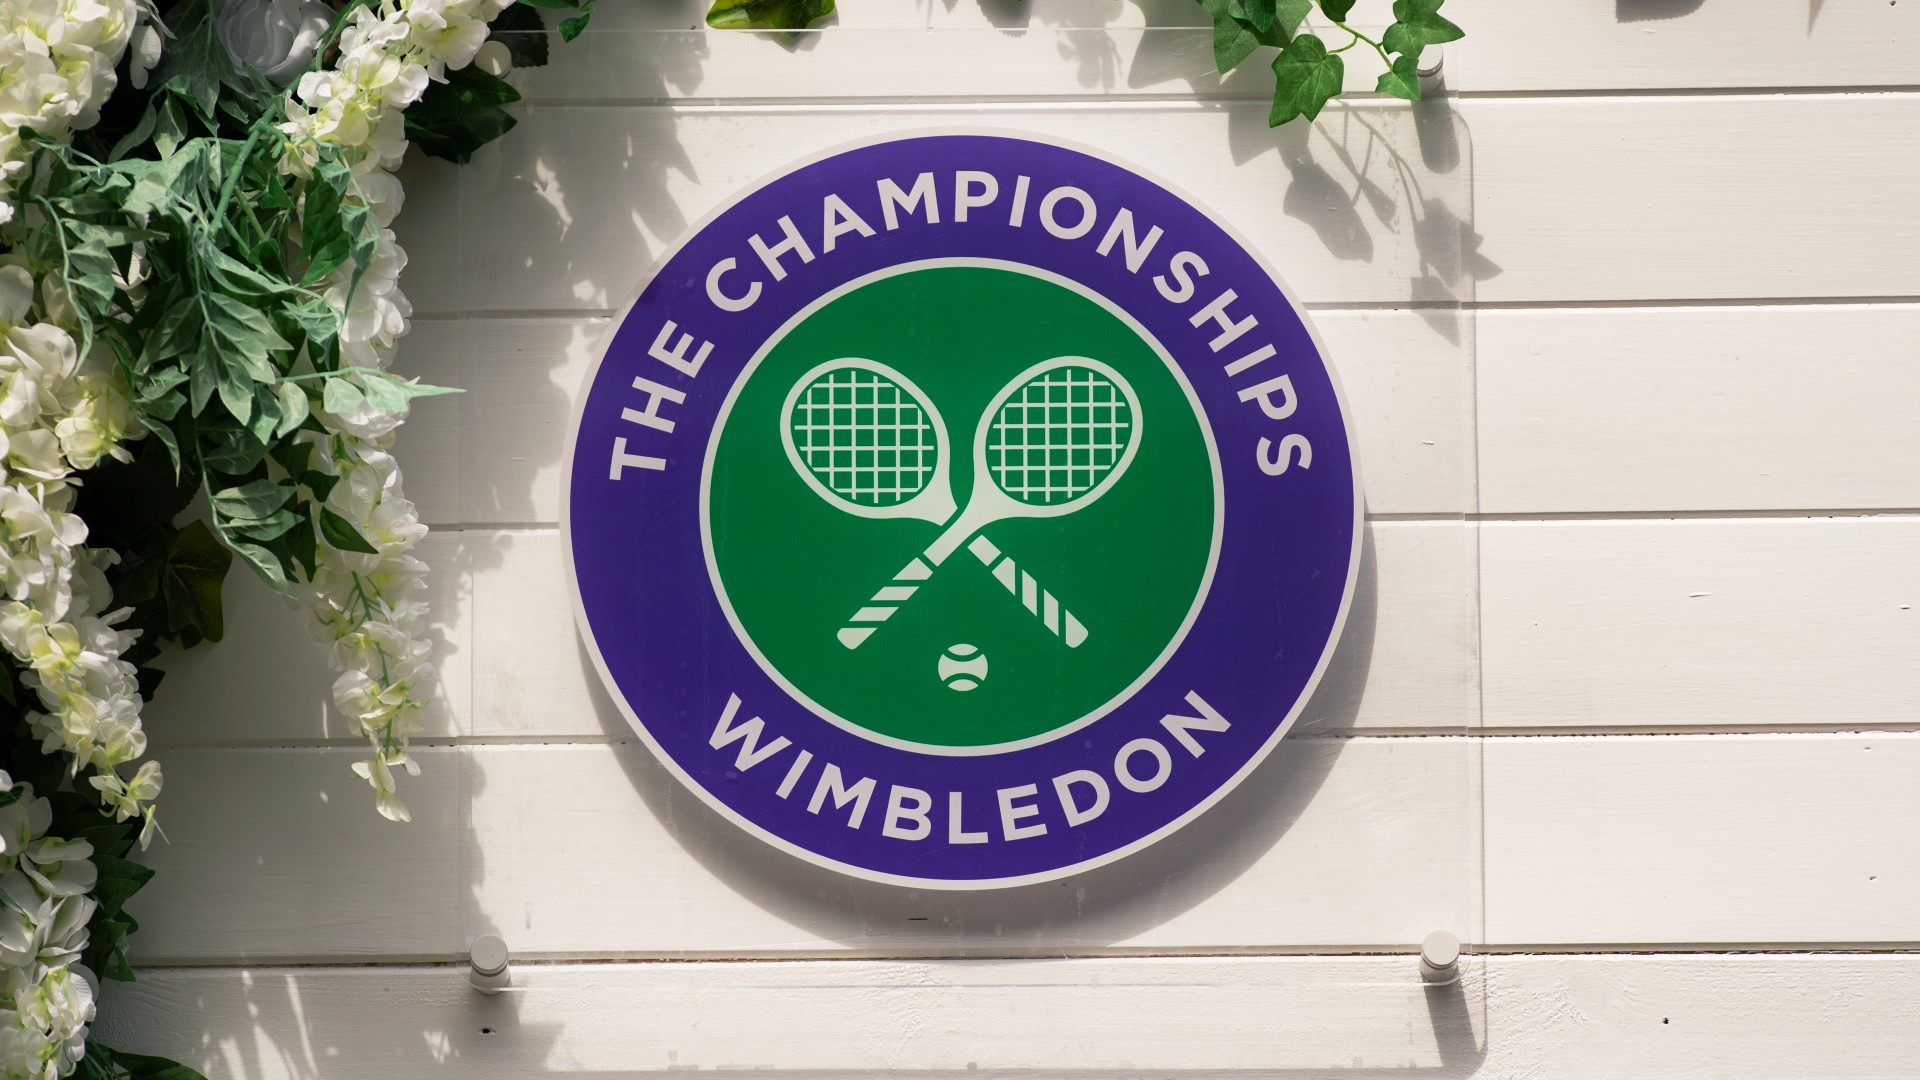 Wimbledon schedule 2021: Full draws, TV coverage, channels & more to watch every tennis match